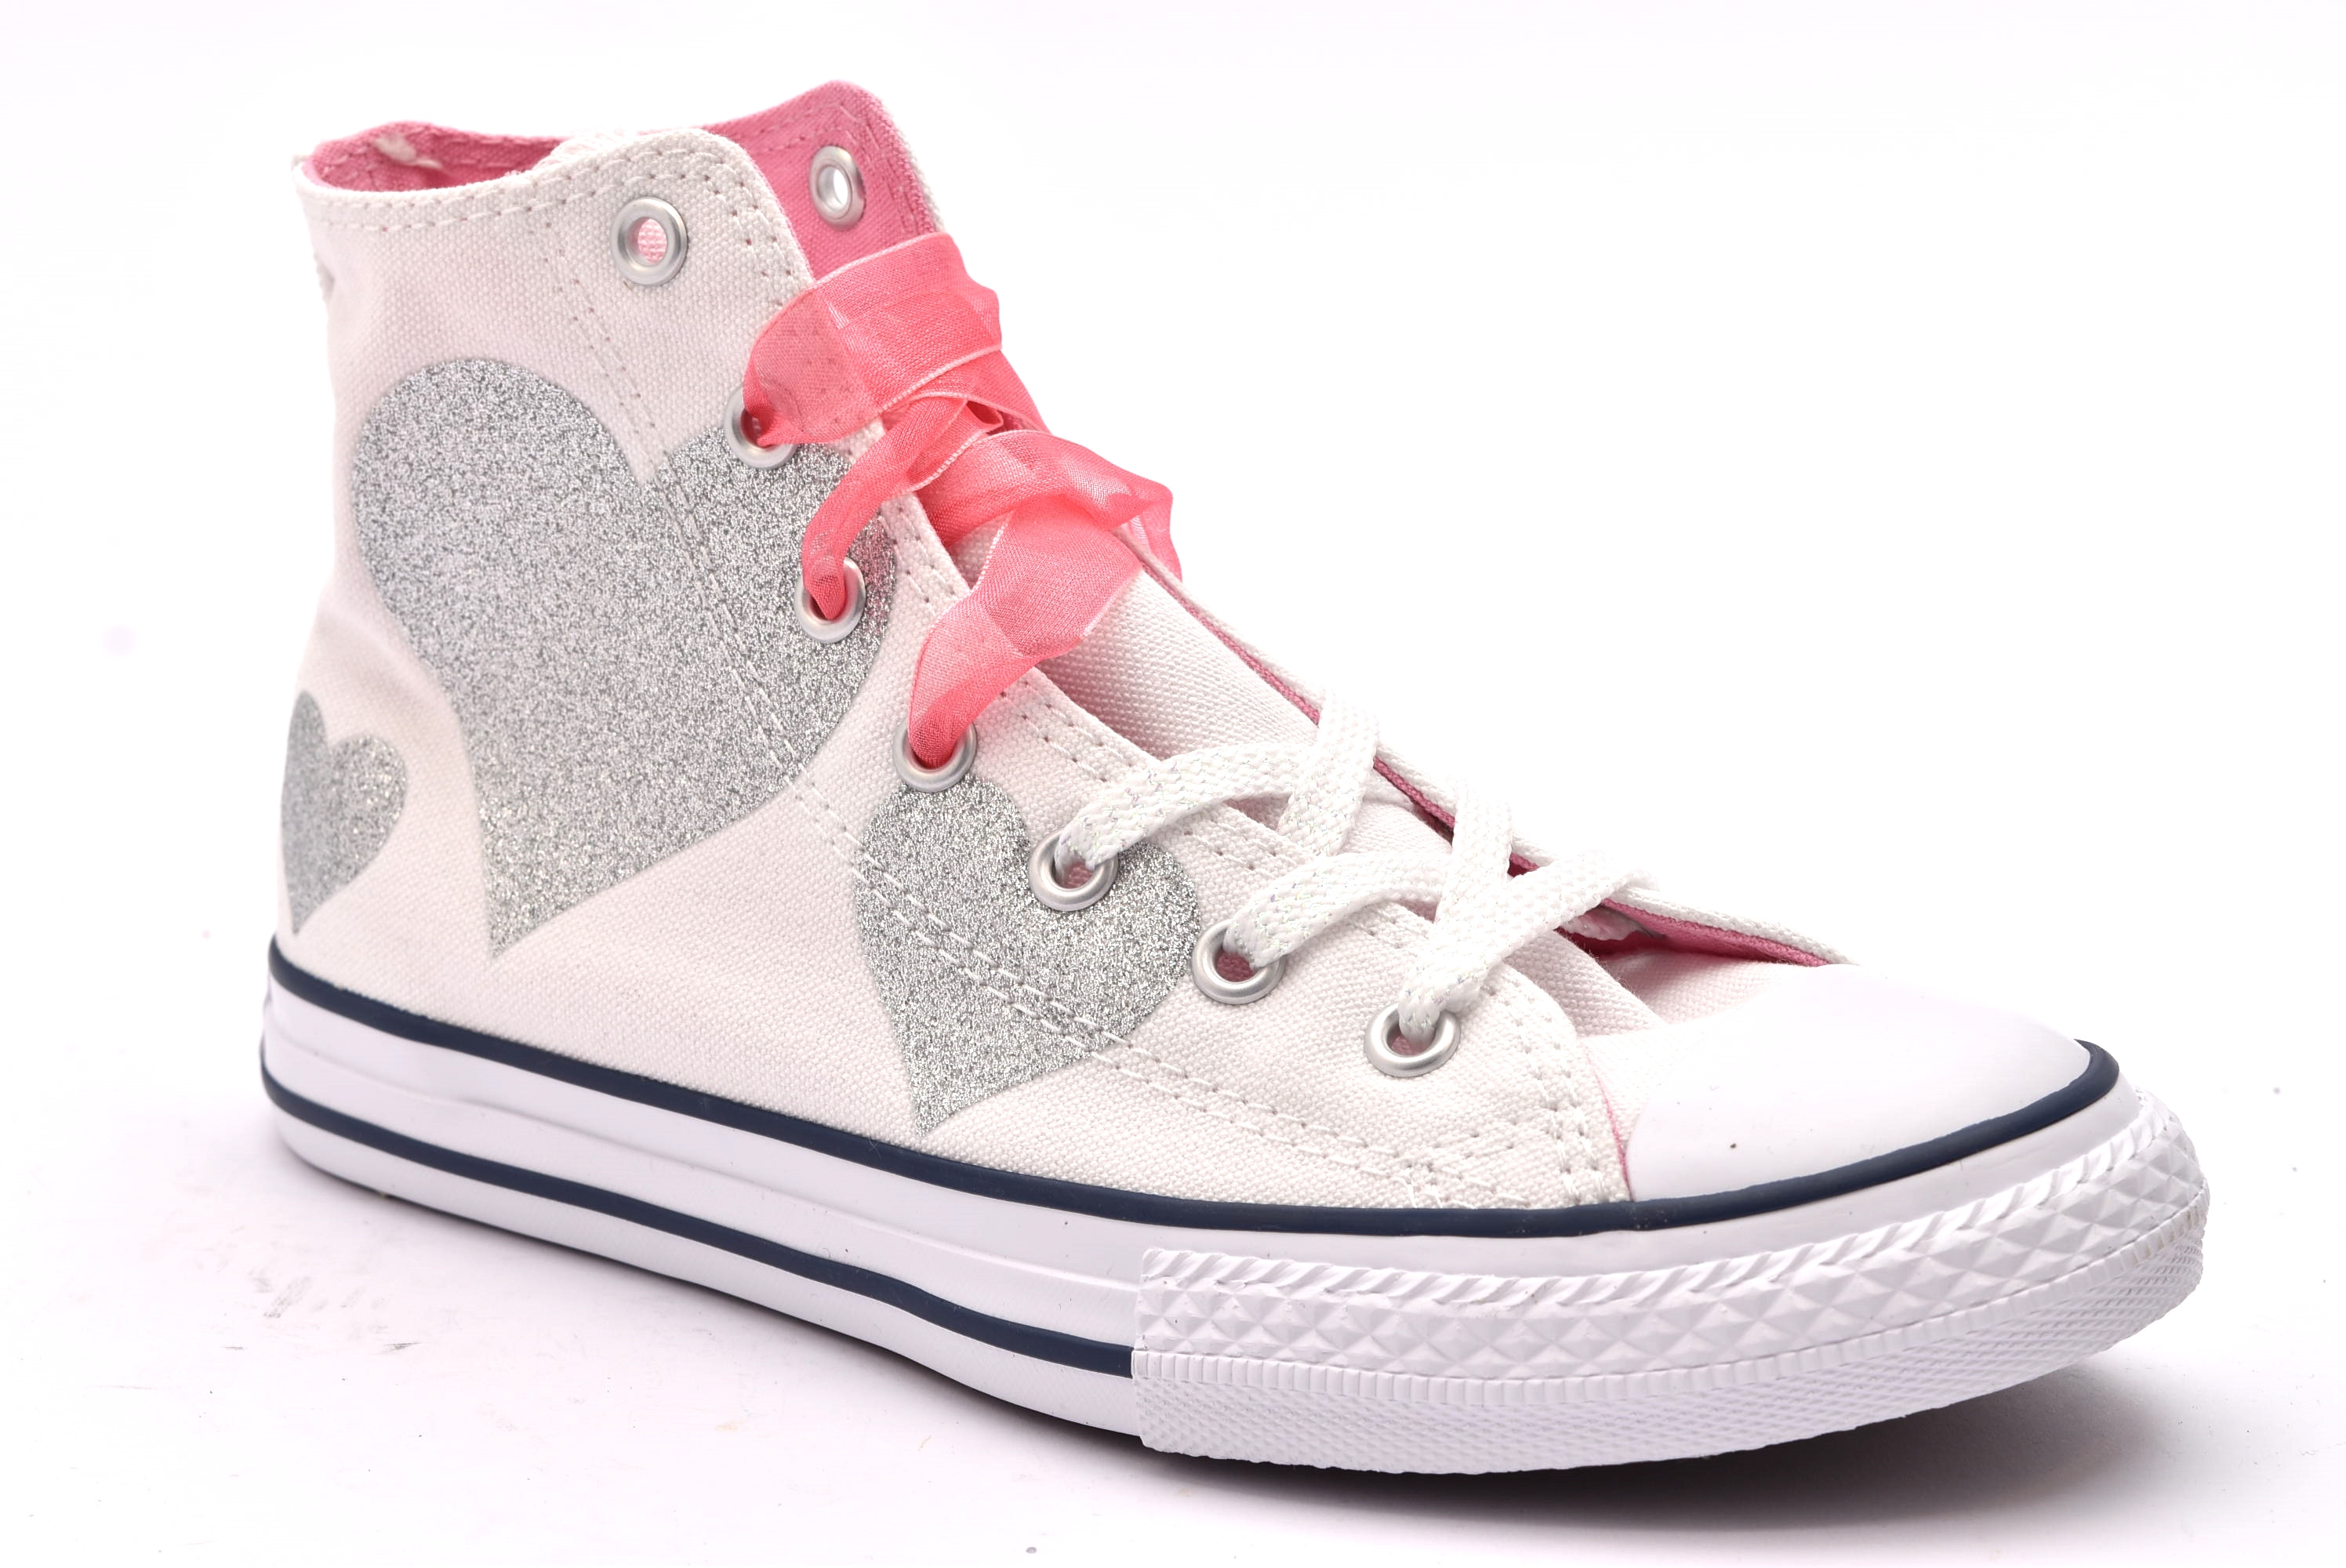 Minimizzare Embody Forno  CONVERSE ALL STAR 660971C alte bianche bambina | shoesmyfriends.it